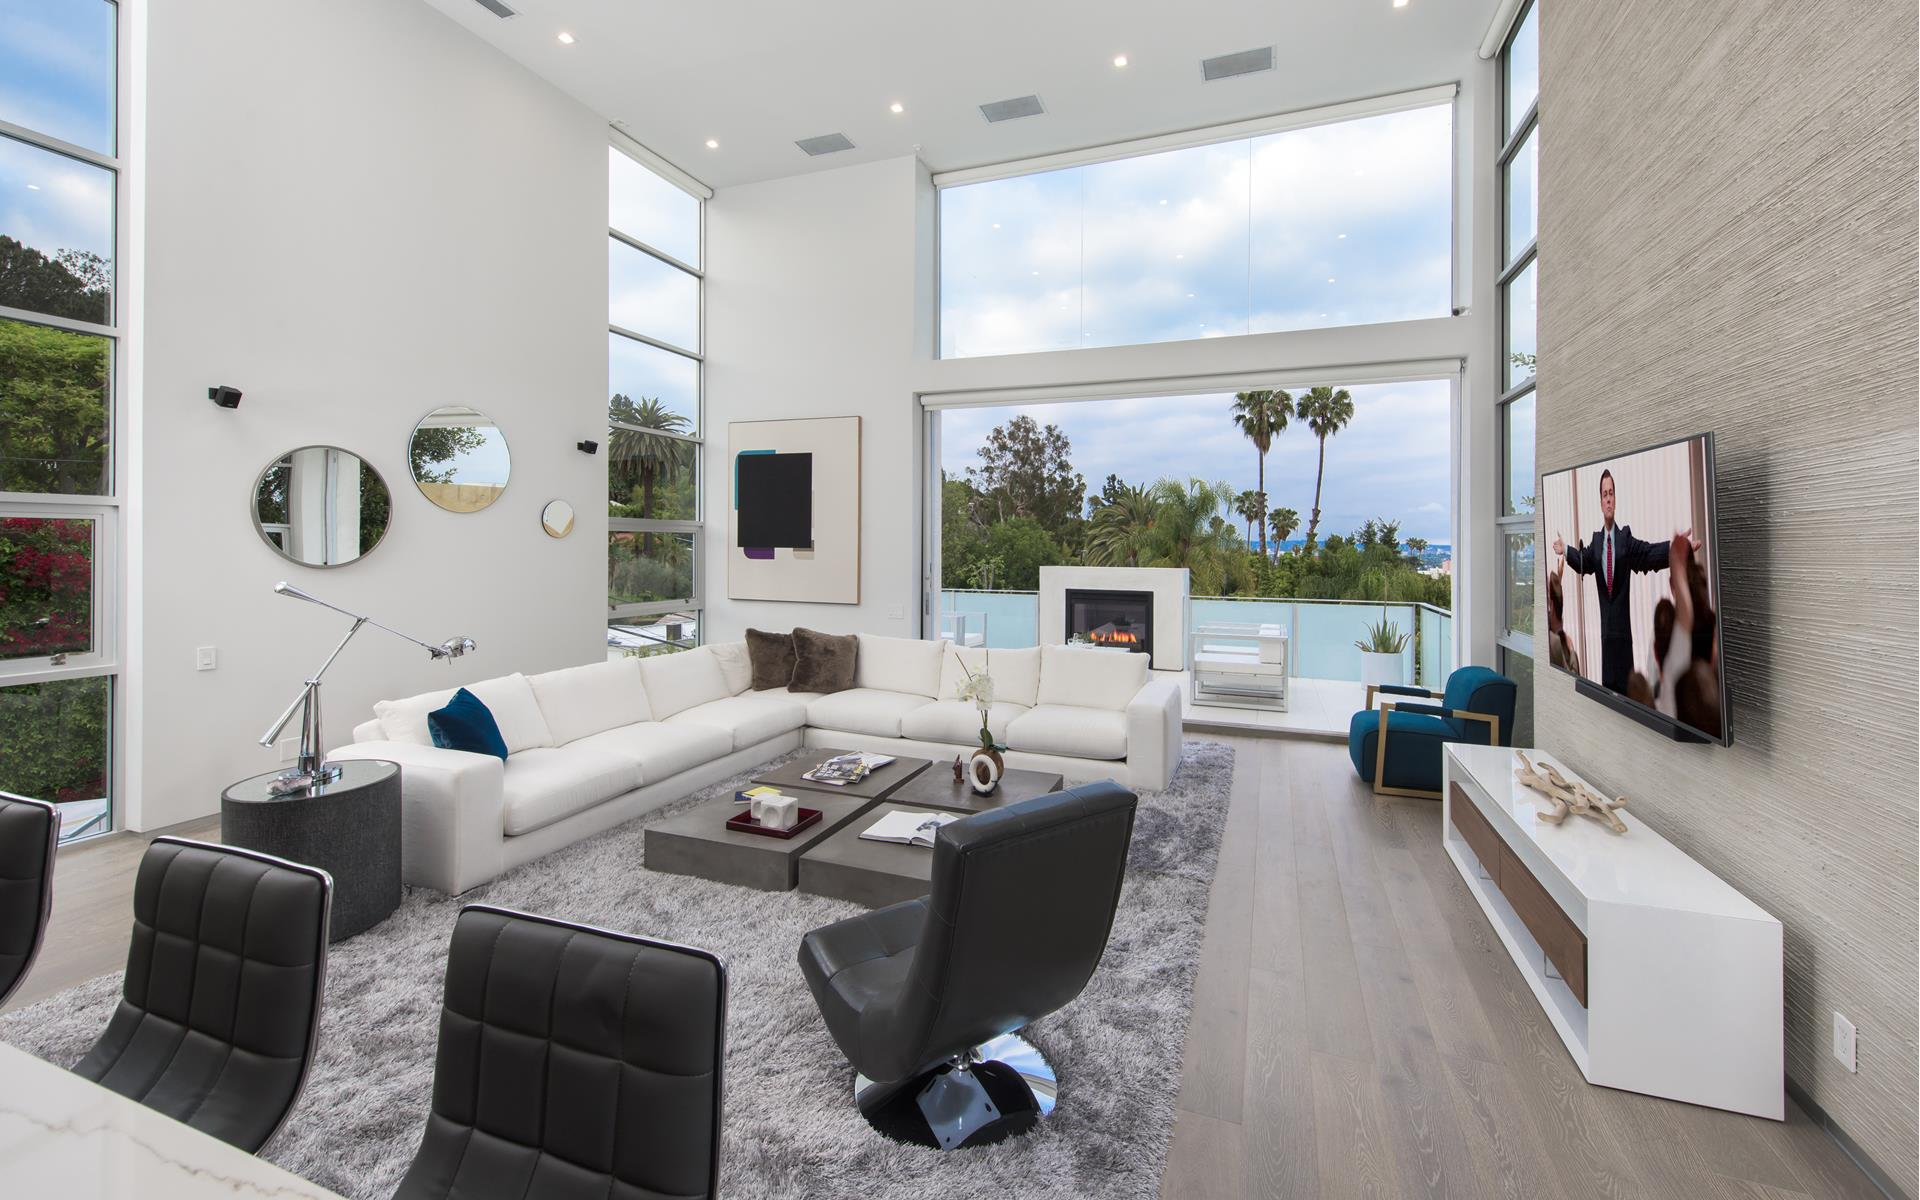 1162 SUNSET HILLS Road - Sunset Strip / Hollywood Hills West, California